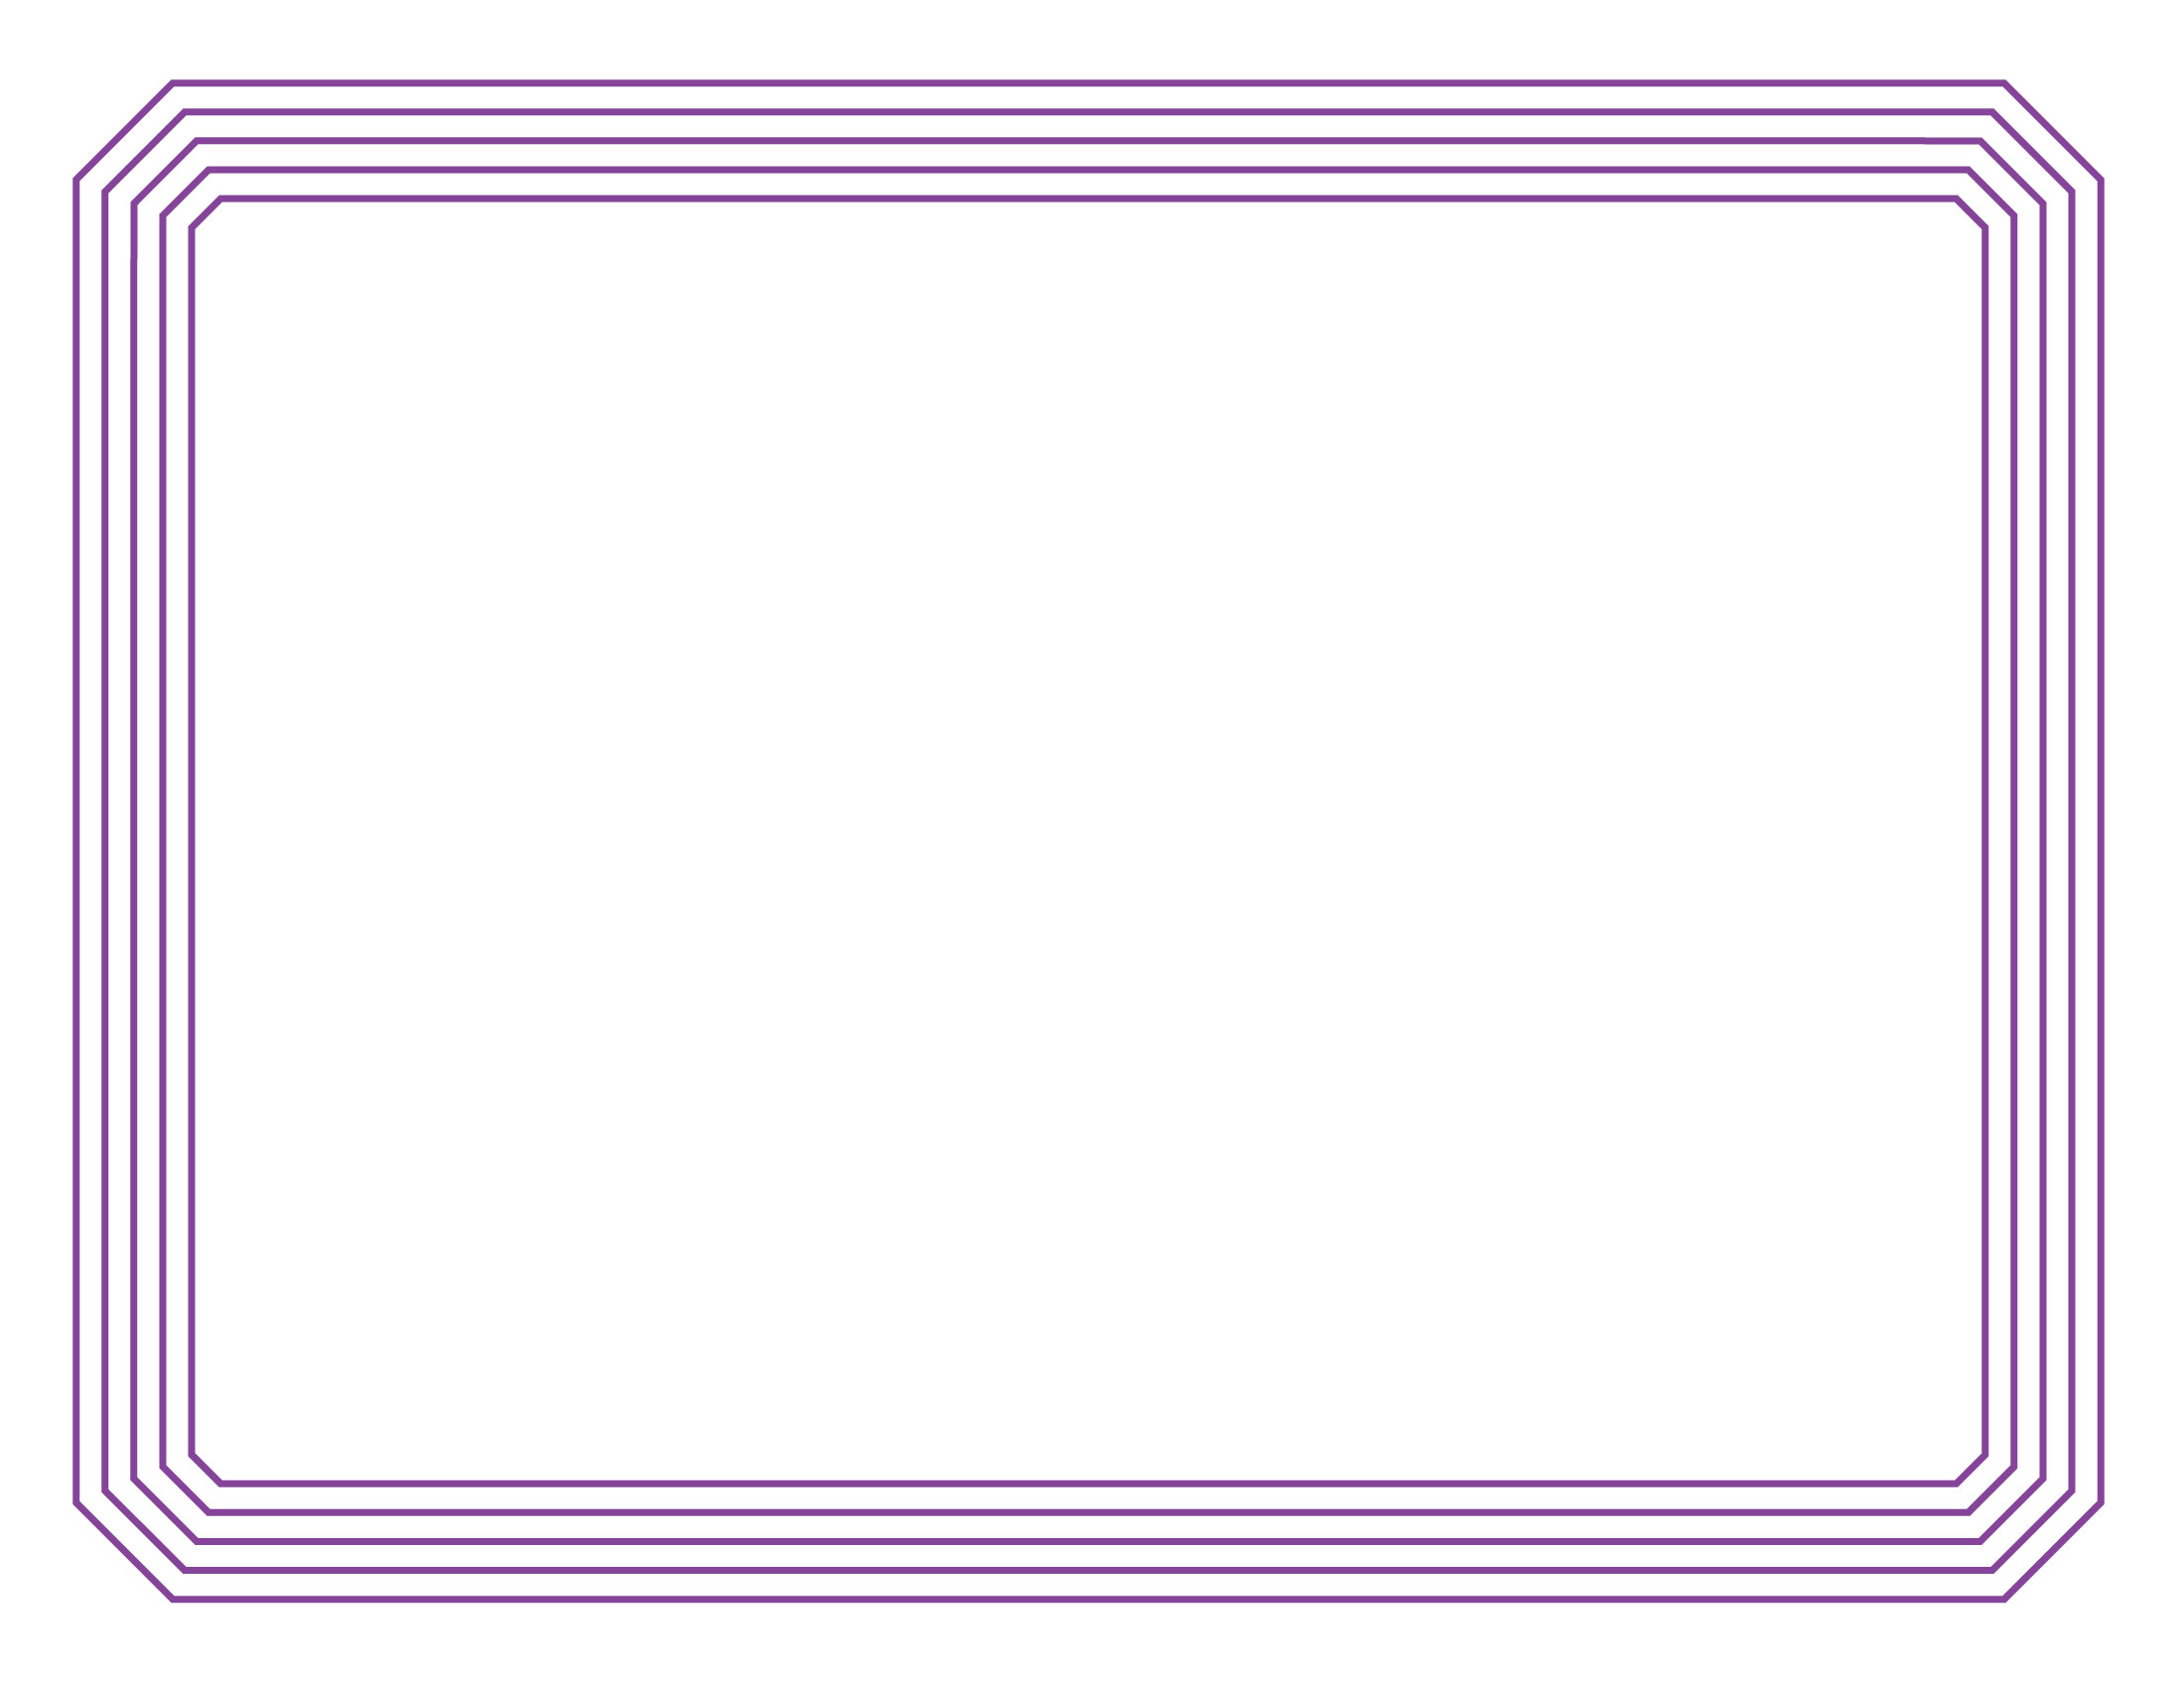 free border templates - free clipart certificate templates